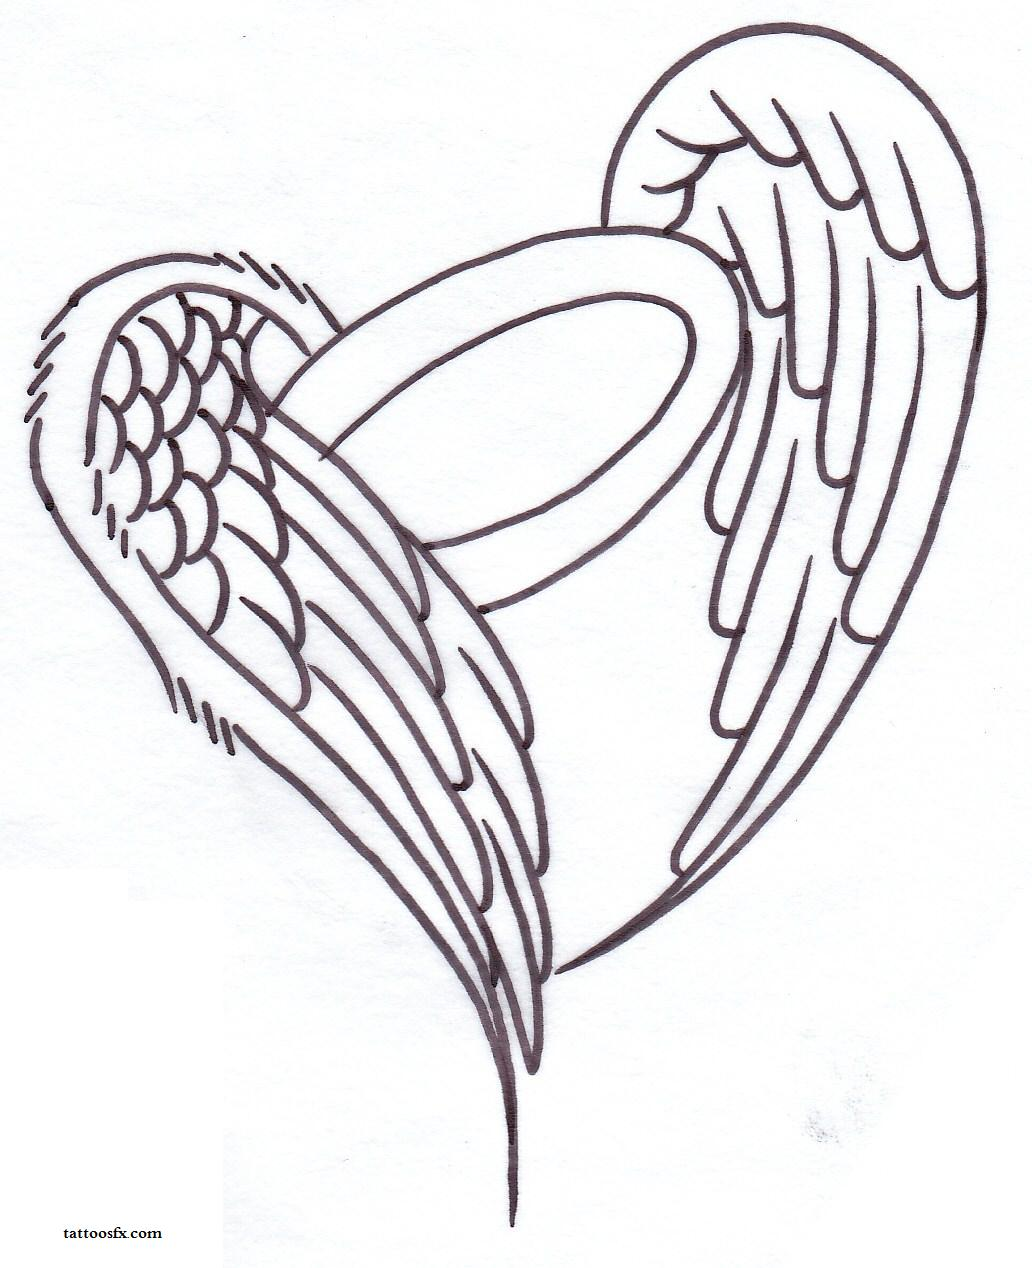 Heart Wings Drawing at GetDrawings.com | Free for personal use Heart ...